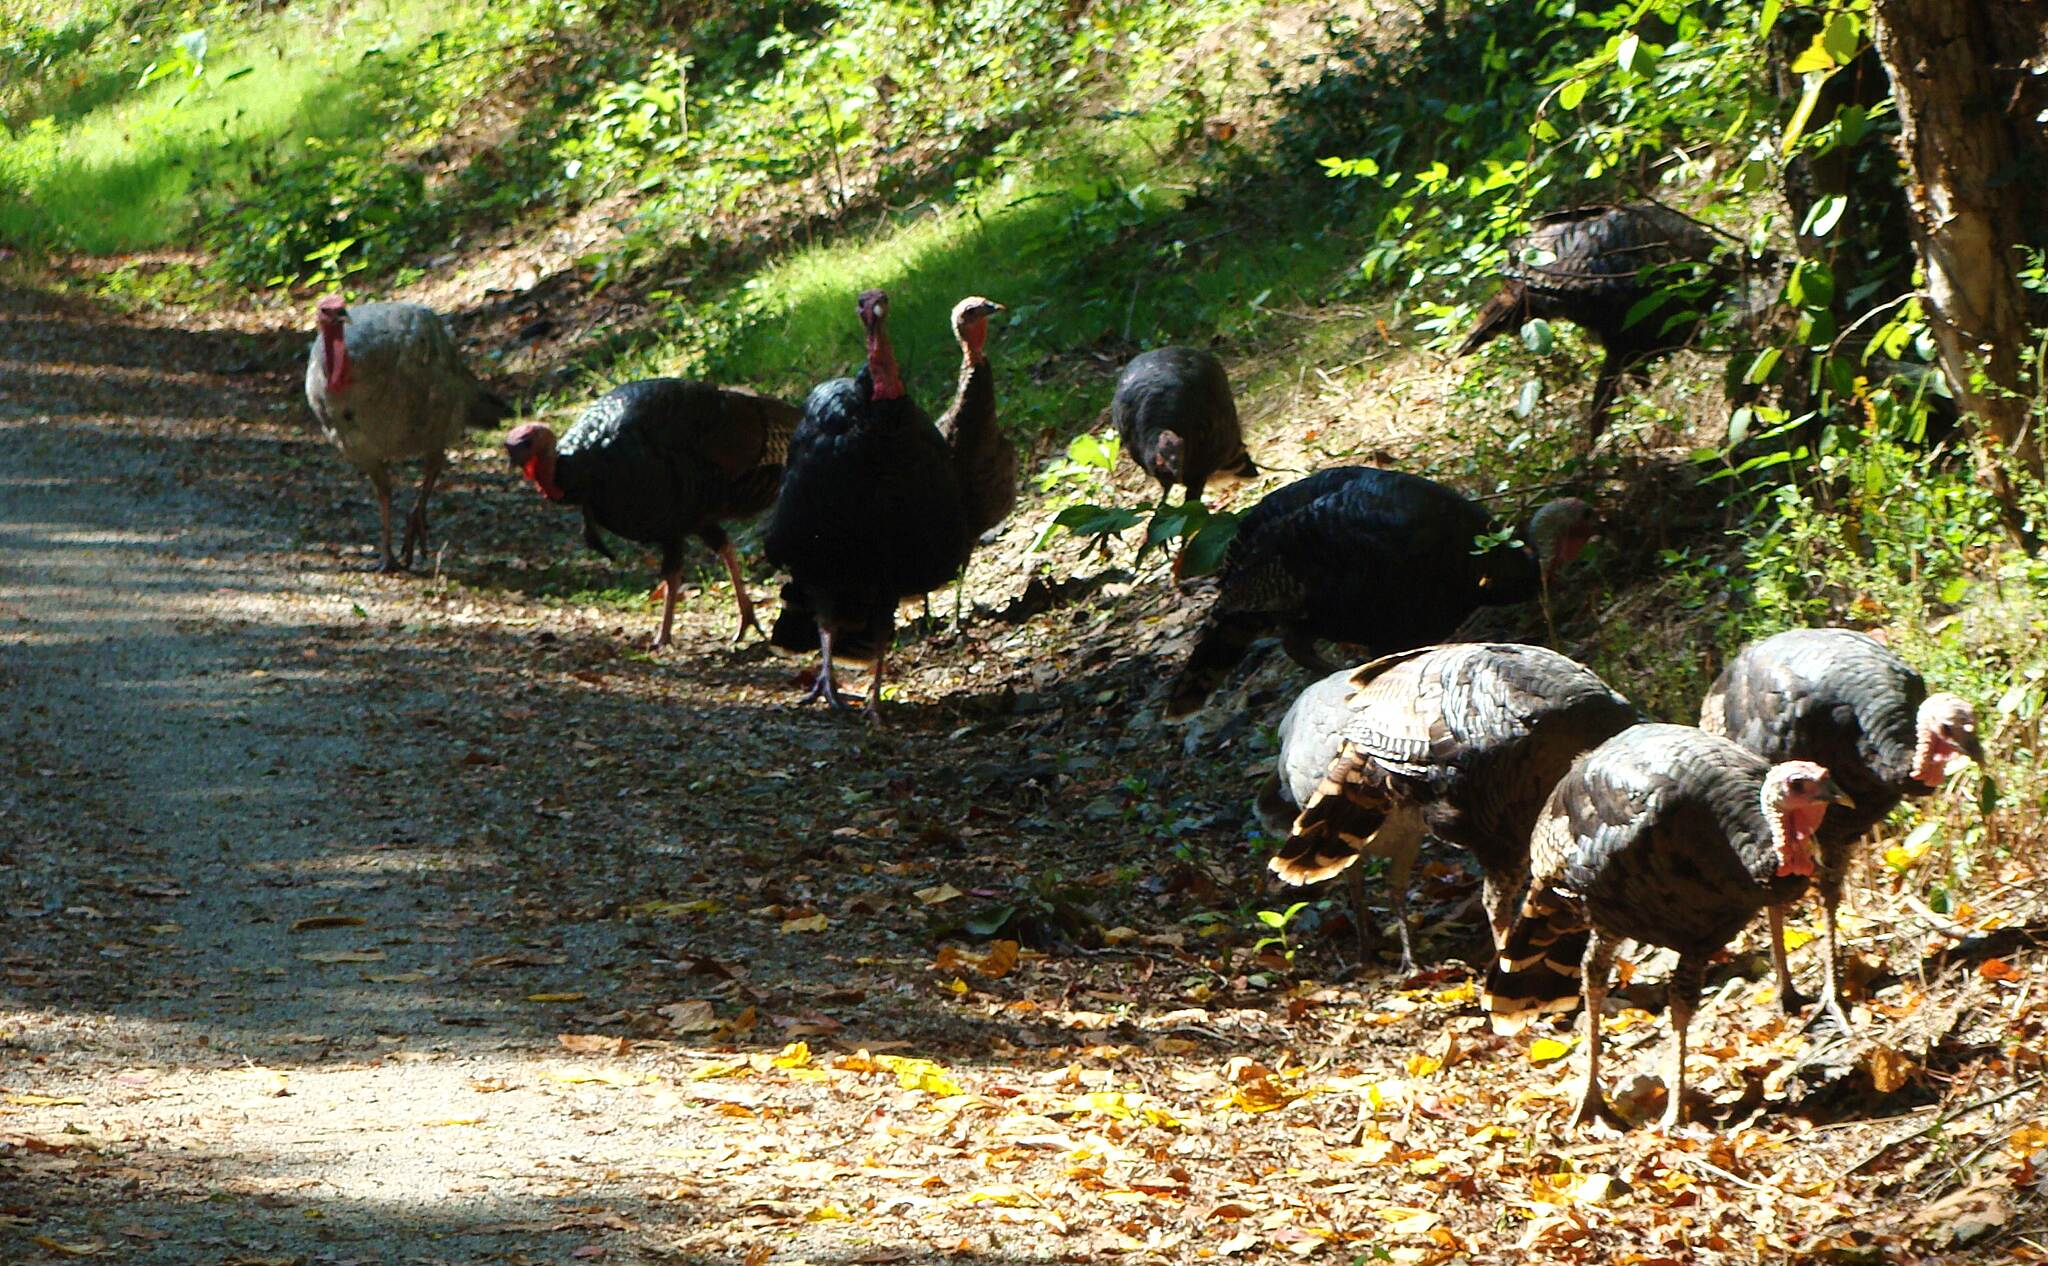 Heritage Rail Trail County Park Trail Birds, Mile 19 It was a beautiful day for a ride on 10/8/15 and there near the golf course even birds took to the trail. By birds, I mean turkeys.